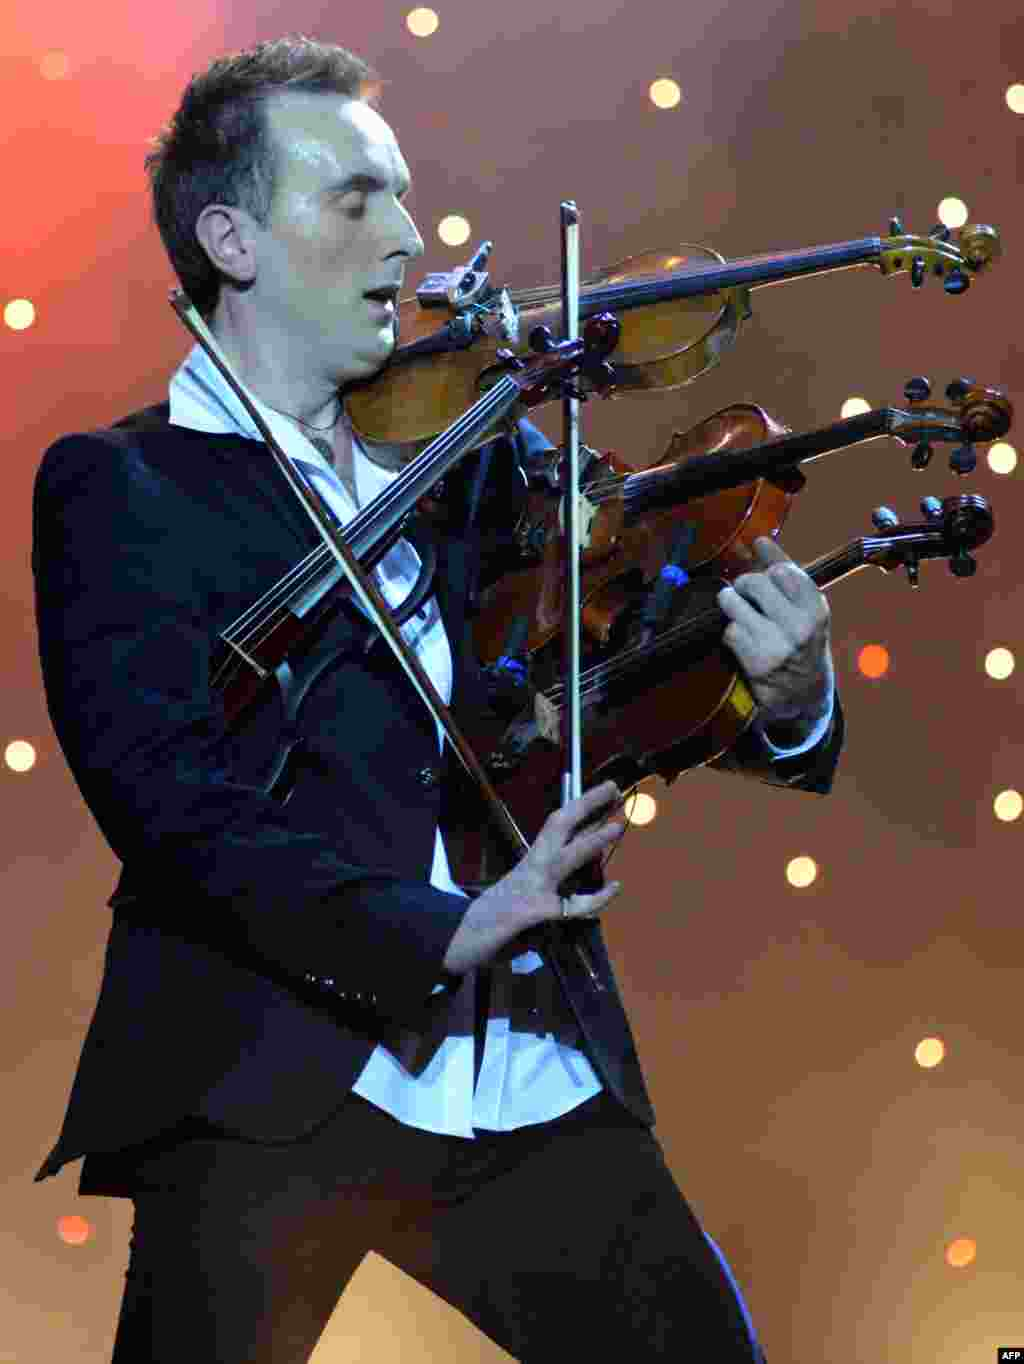 """Ukrainian virtuoso Oleksandr Bozhyk plays four violins at the same time as he performs ''Requiem For A Dream"""" by Clint Mansell during a solo concert in the western Ukrainian city of Lviv. (AFP/Yuriy Dyachyshyn)"""